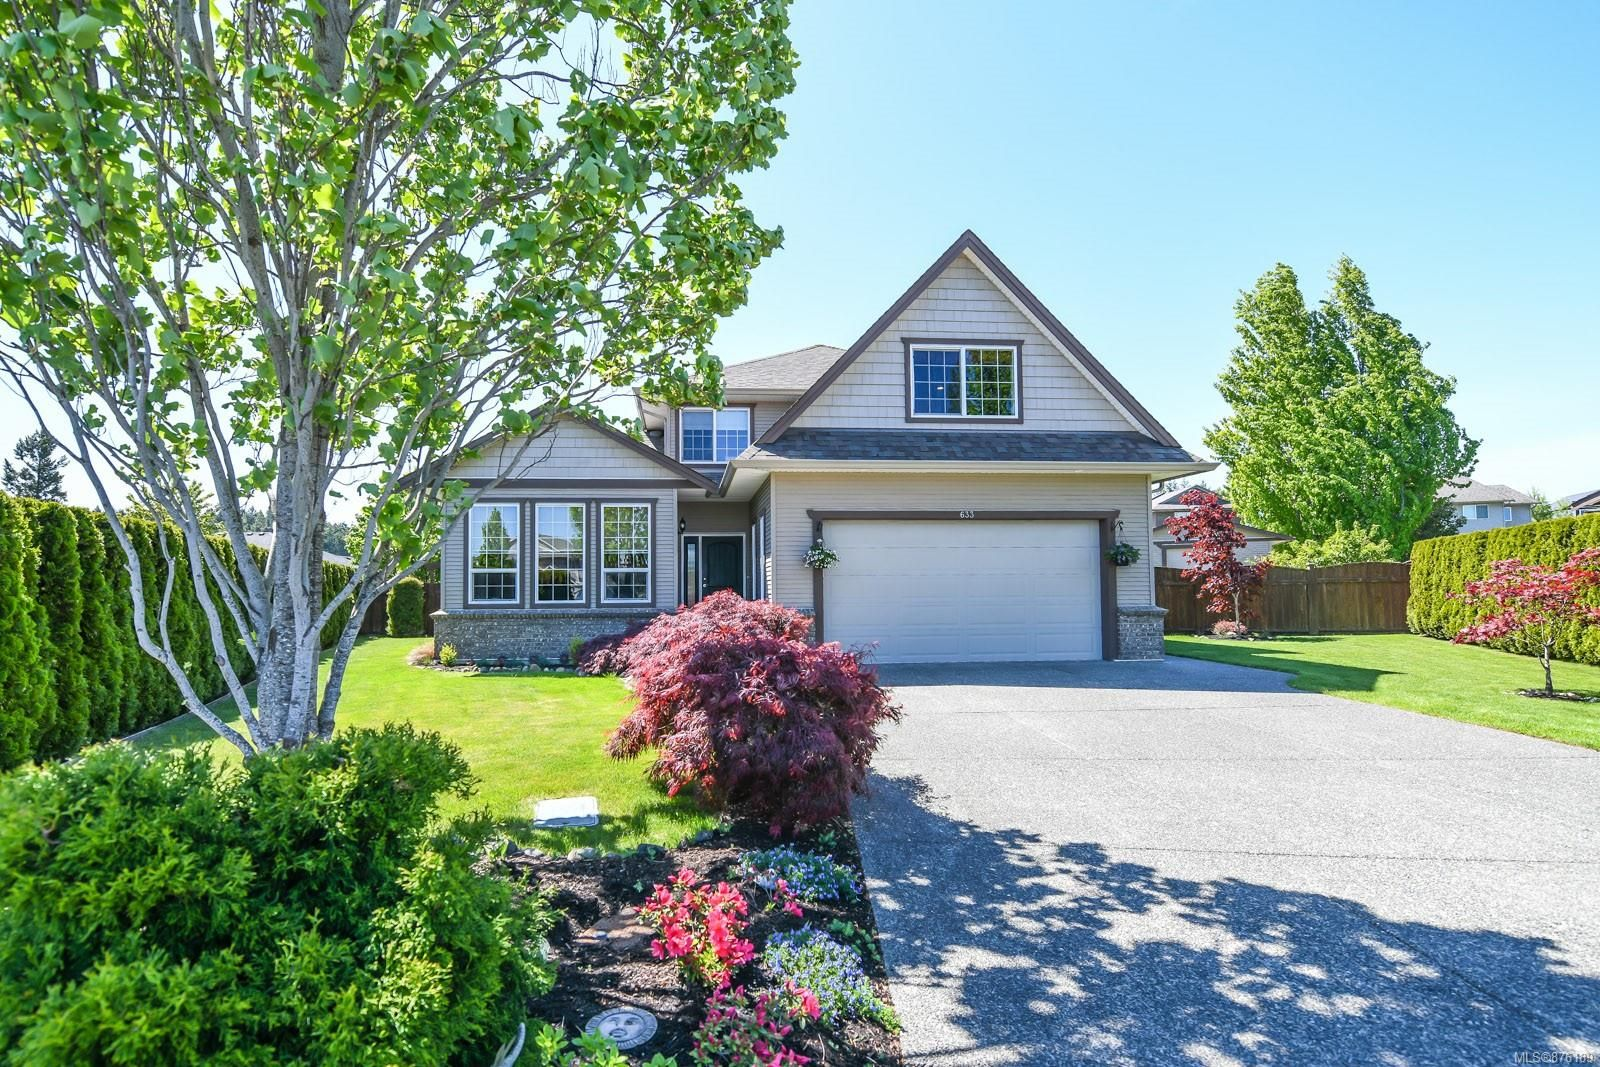 Main Photo: 633 Expeditor Pl in : CV Comox (Town of) House for sale (Comox Valley)  : MLS®# 876189